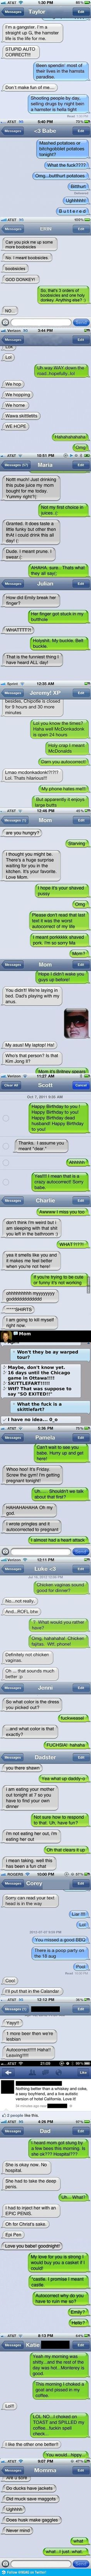 Best autocorrects of 2012 ~ SO FUNNY! I cried I was laughing so hard! Totally inappropriate, but too funny! Haha Funny, Funny Texts, Funny Jokes, Funny Fails, Funny Stuff, Humor Texts, Humor Quotes, Funny Things, Funny People